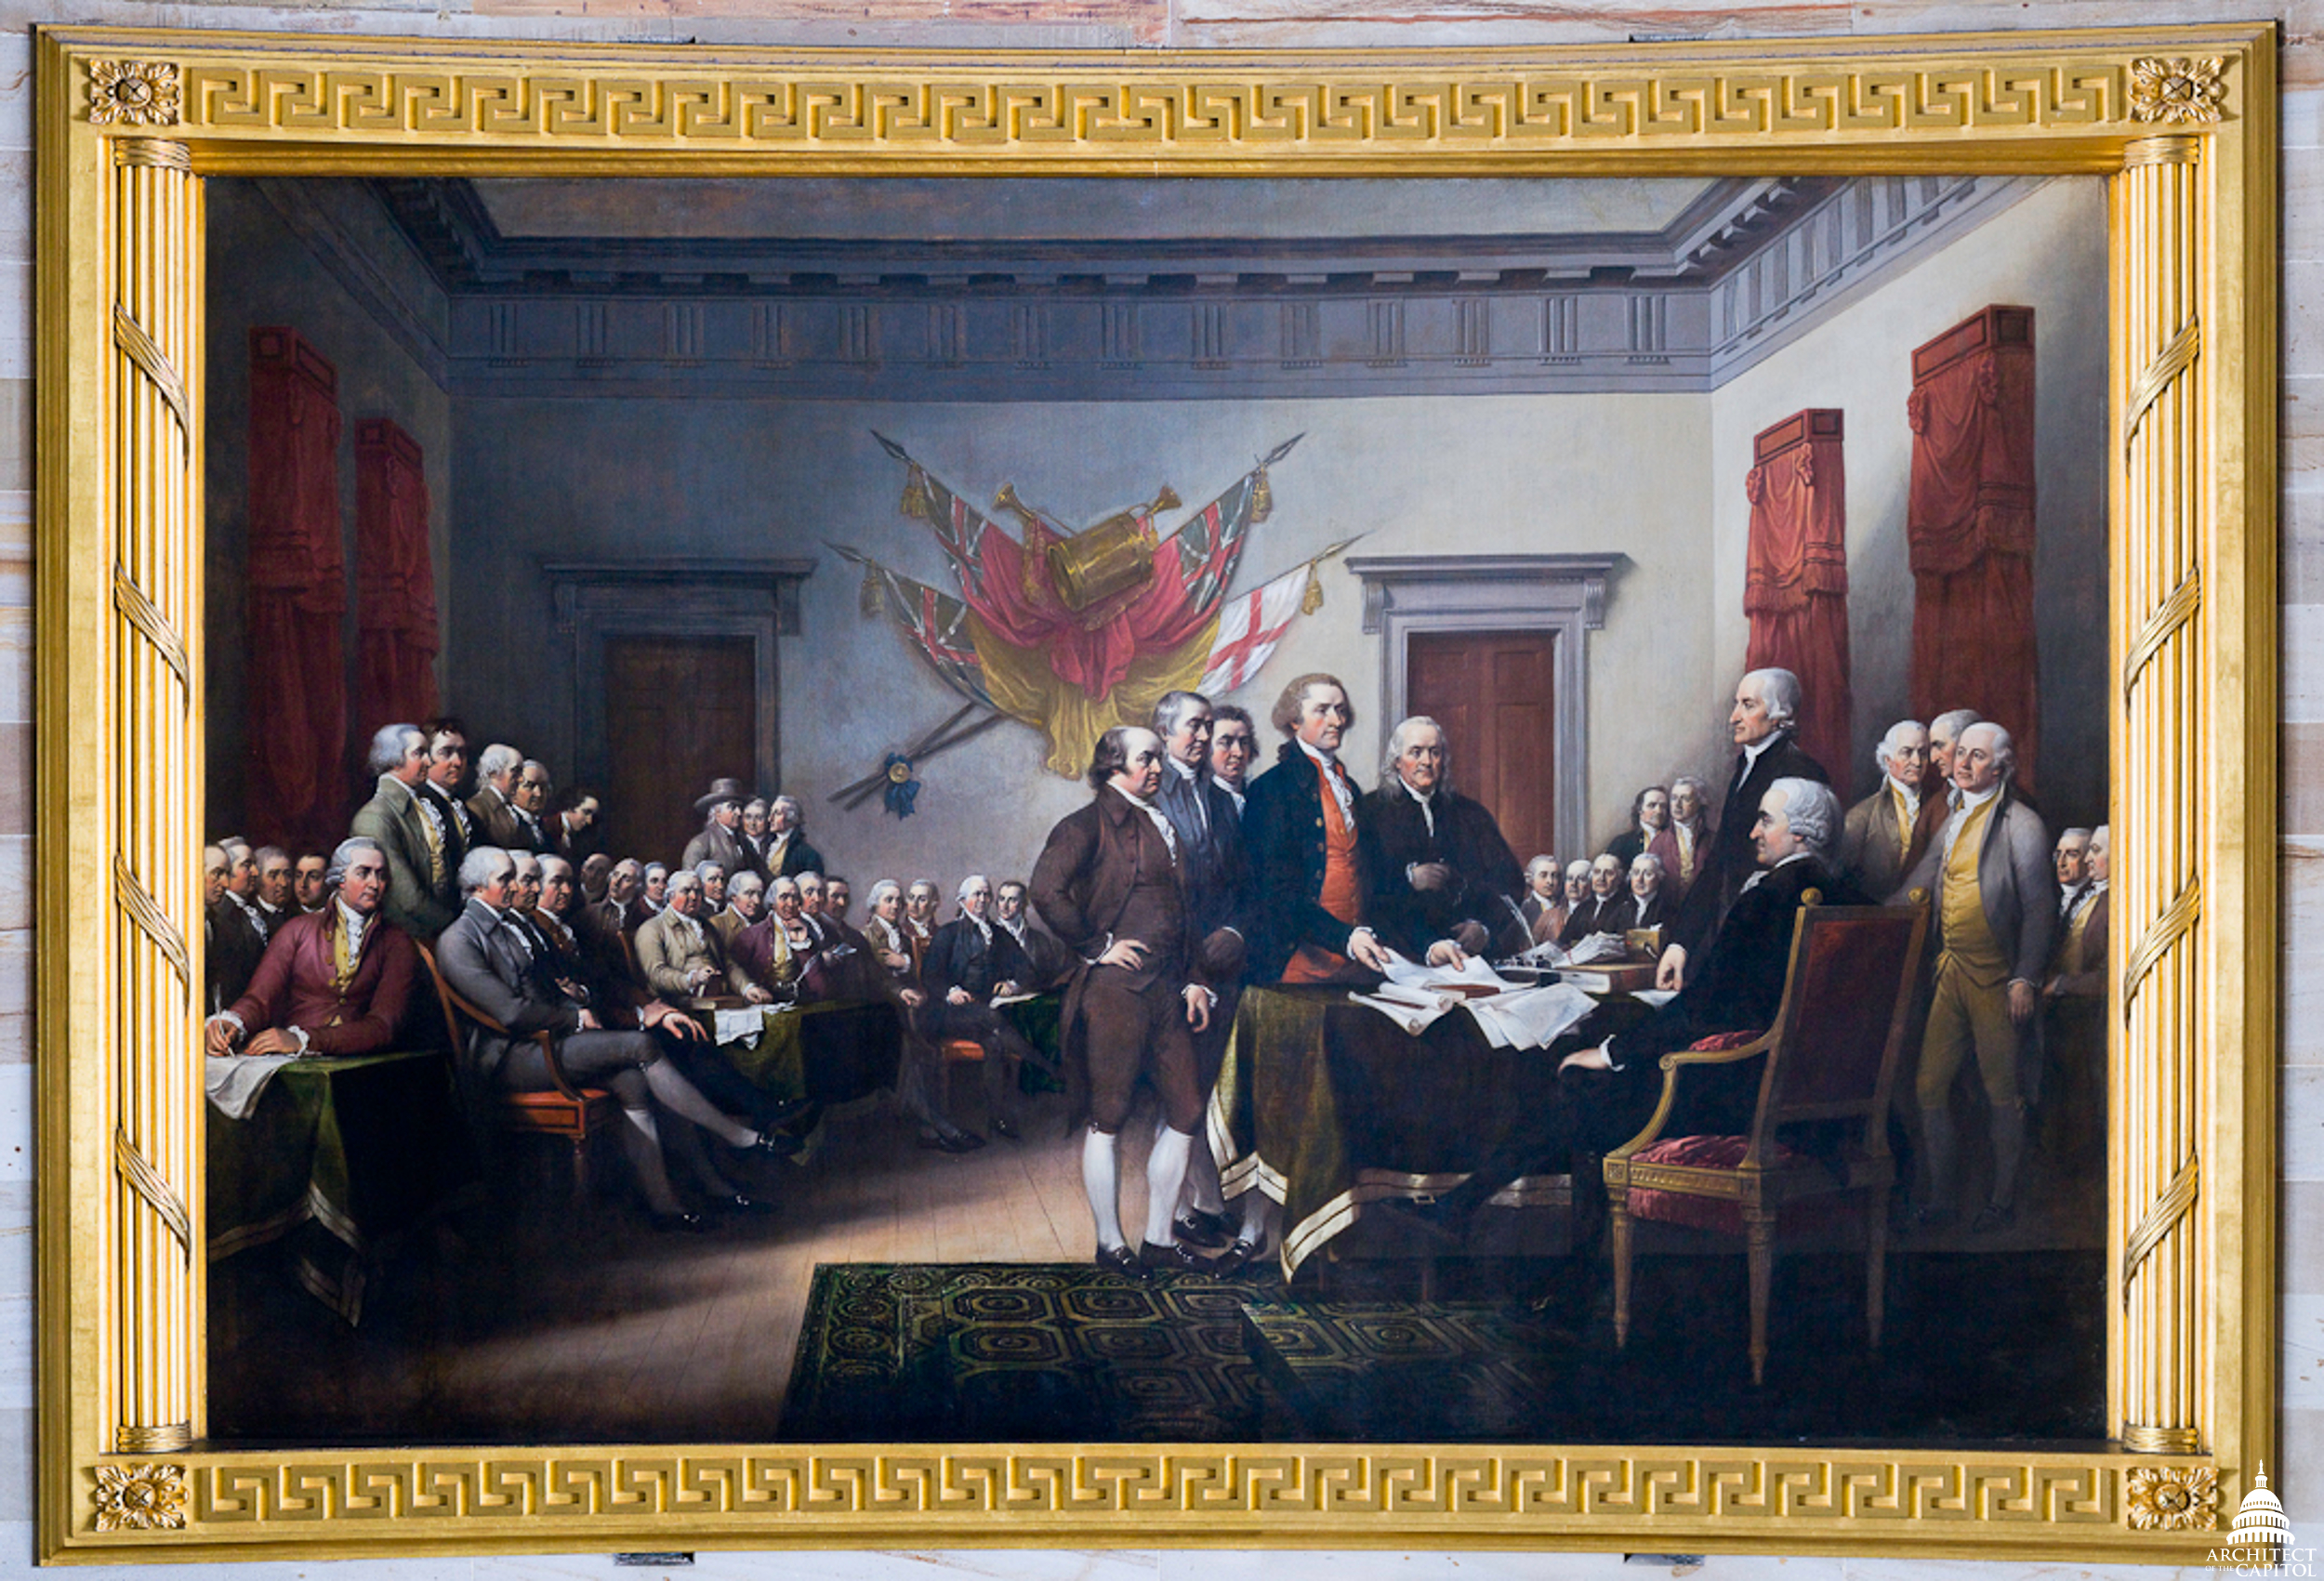 This painting of the Declaration of Independence by John Trumbull is on display in the Capitol Rotunda.